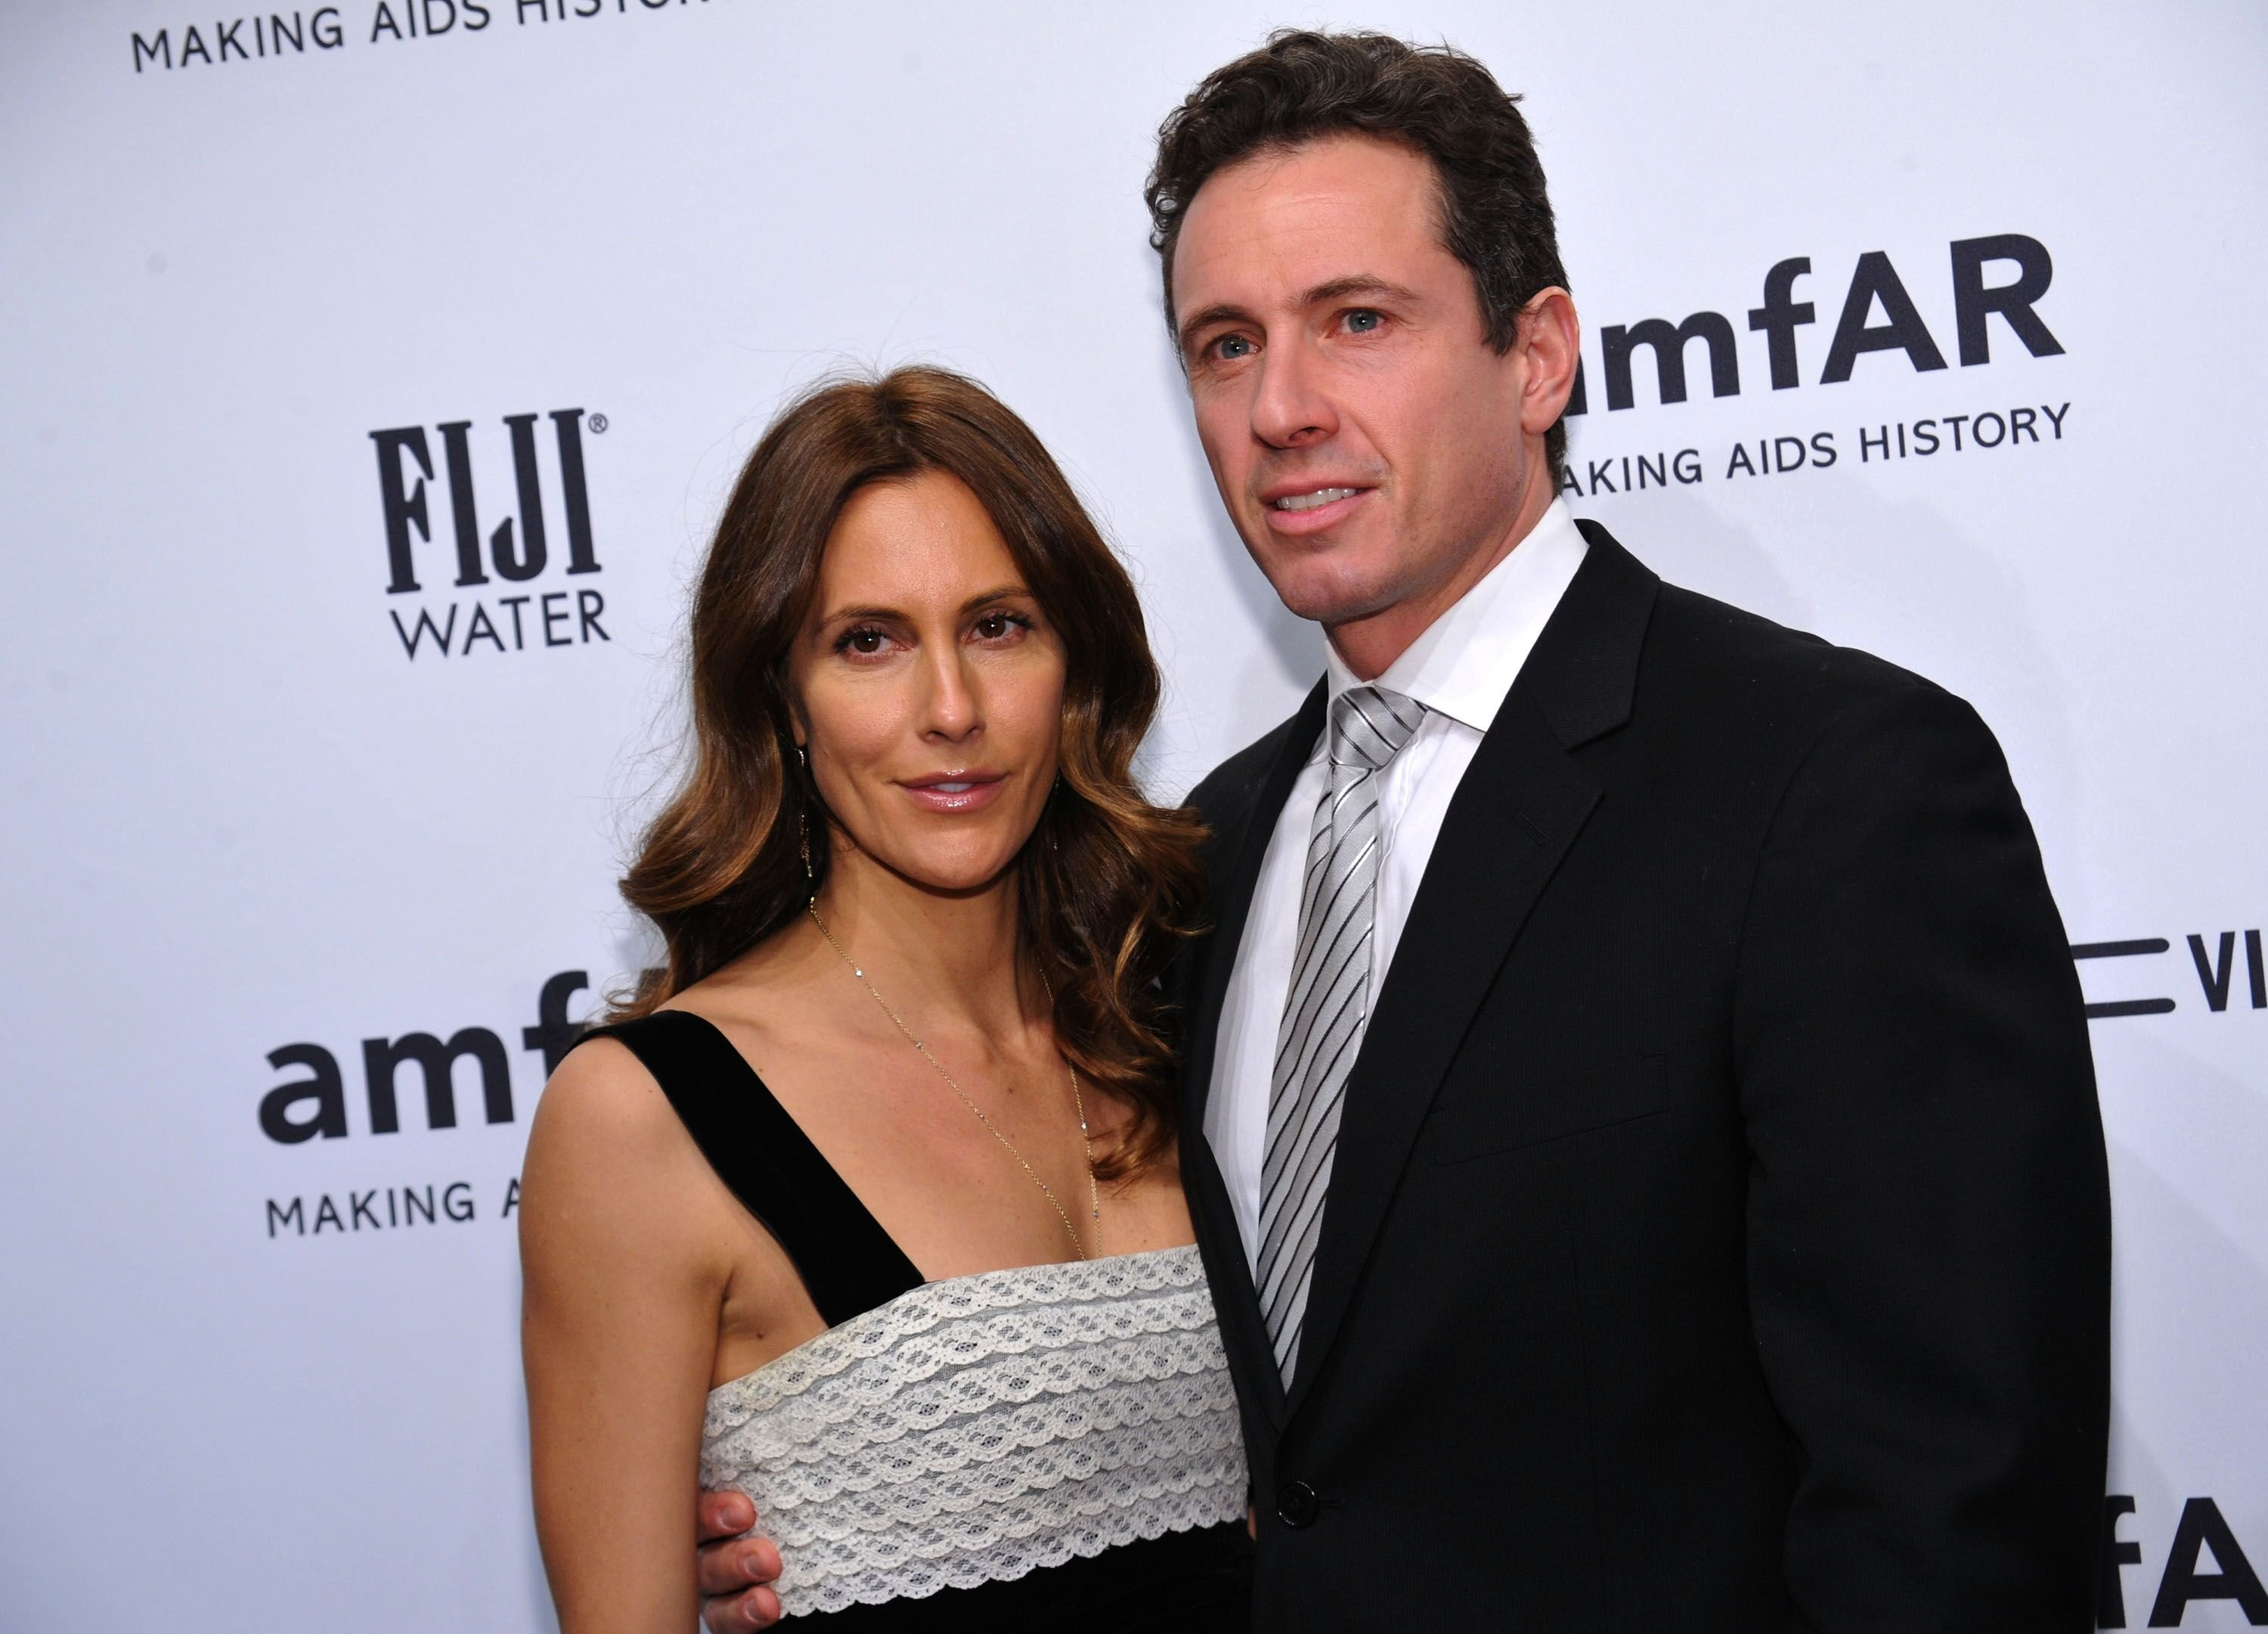 Cristina Cuomo and Chris Cuomo at the amfAR New York Gala to kick off Fall 2013 Fashion Week  | Photo: Getty Images